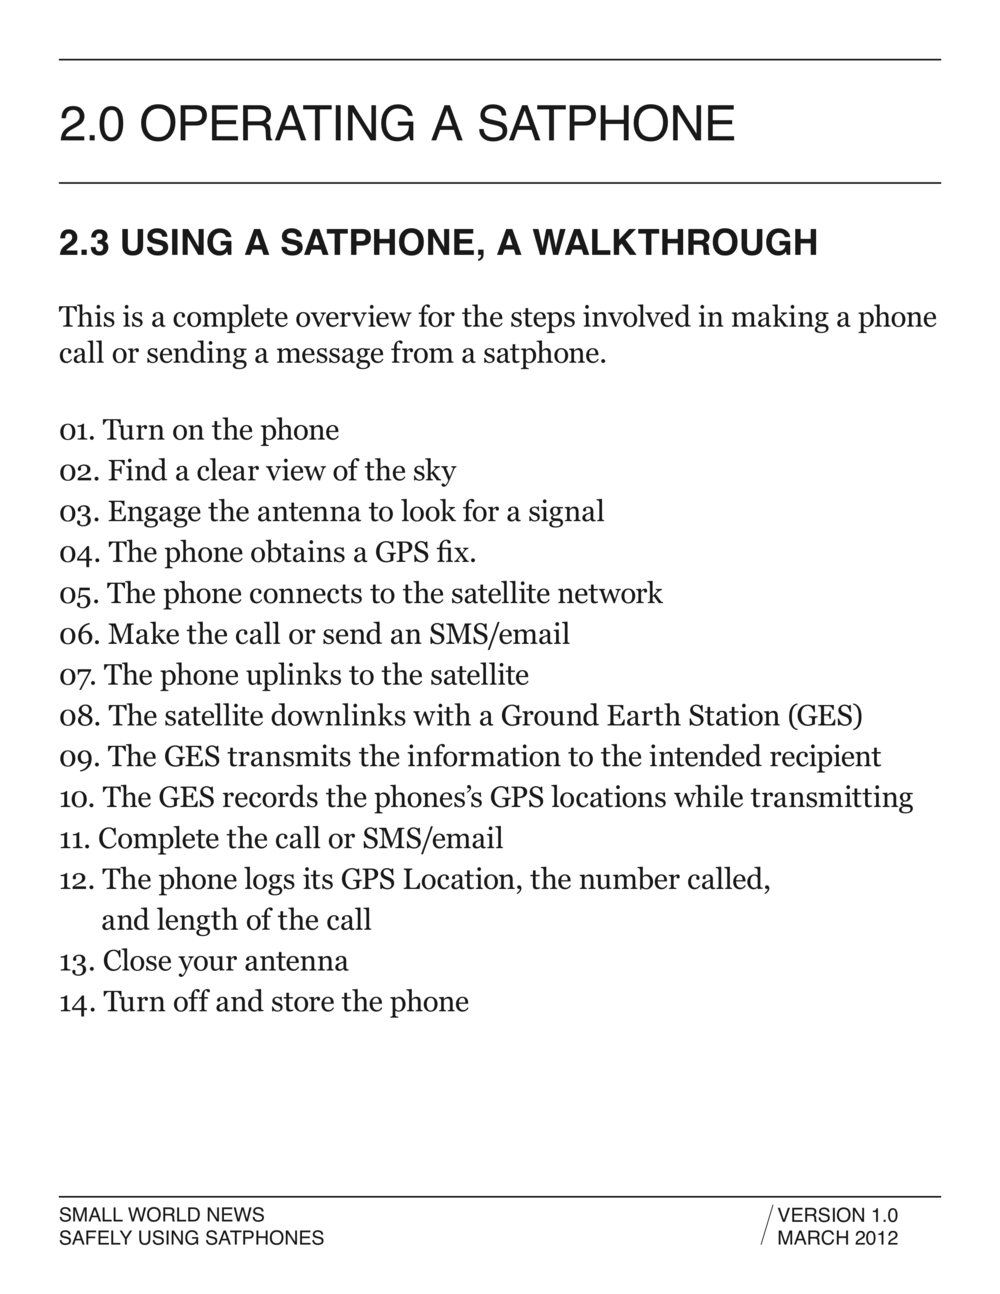 satphone 11.png